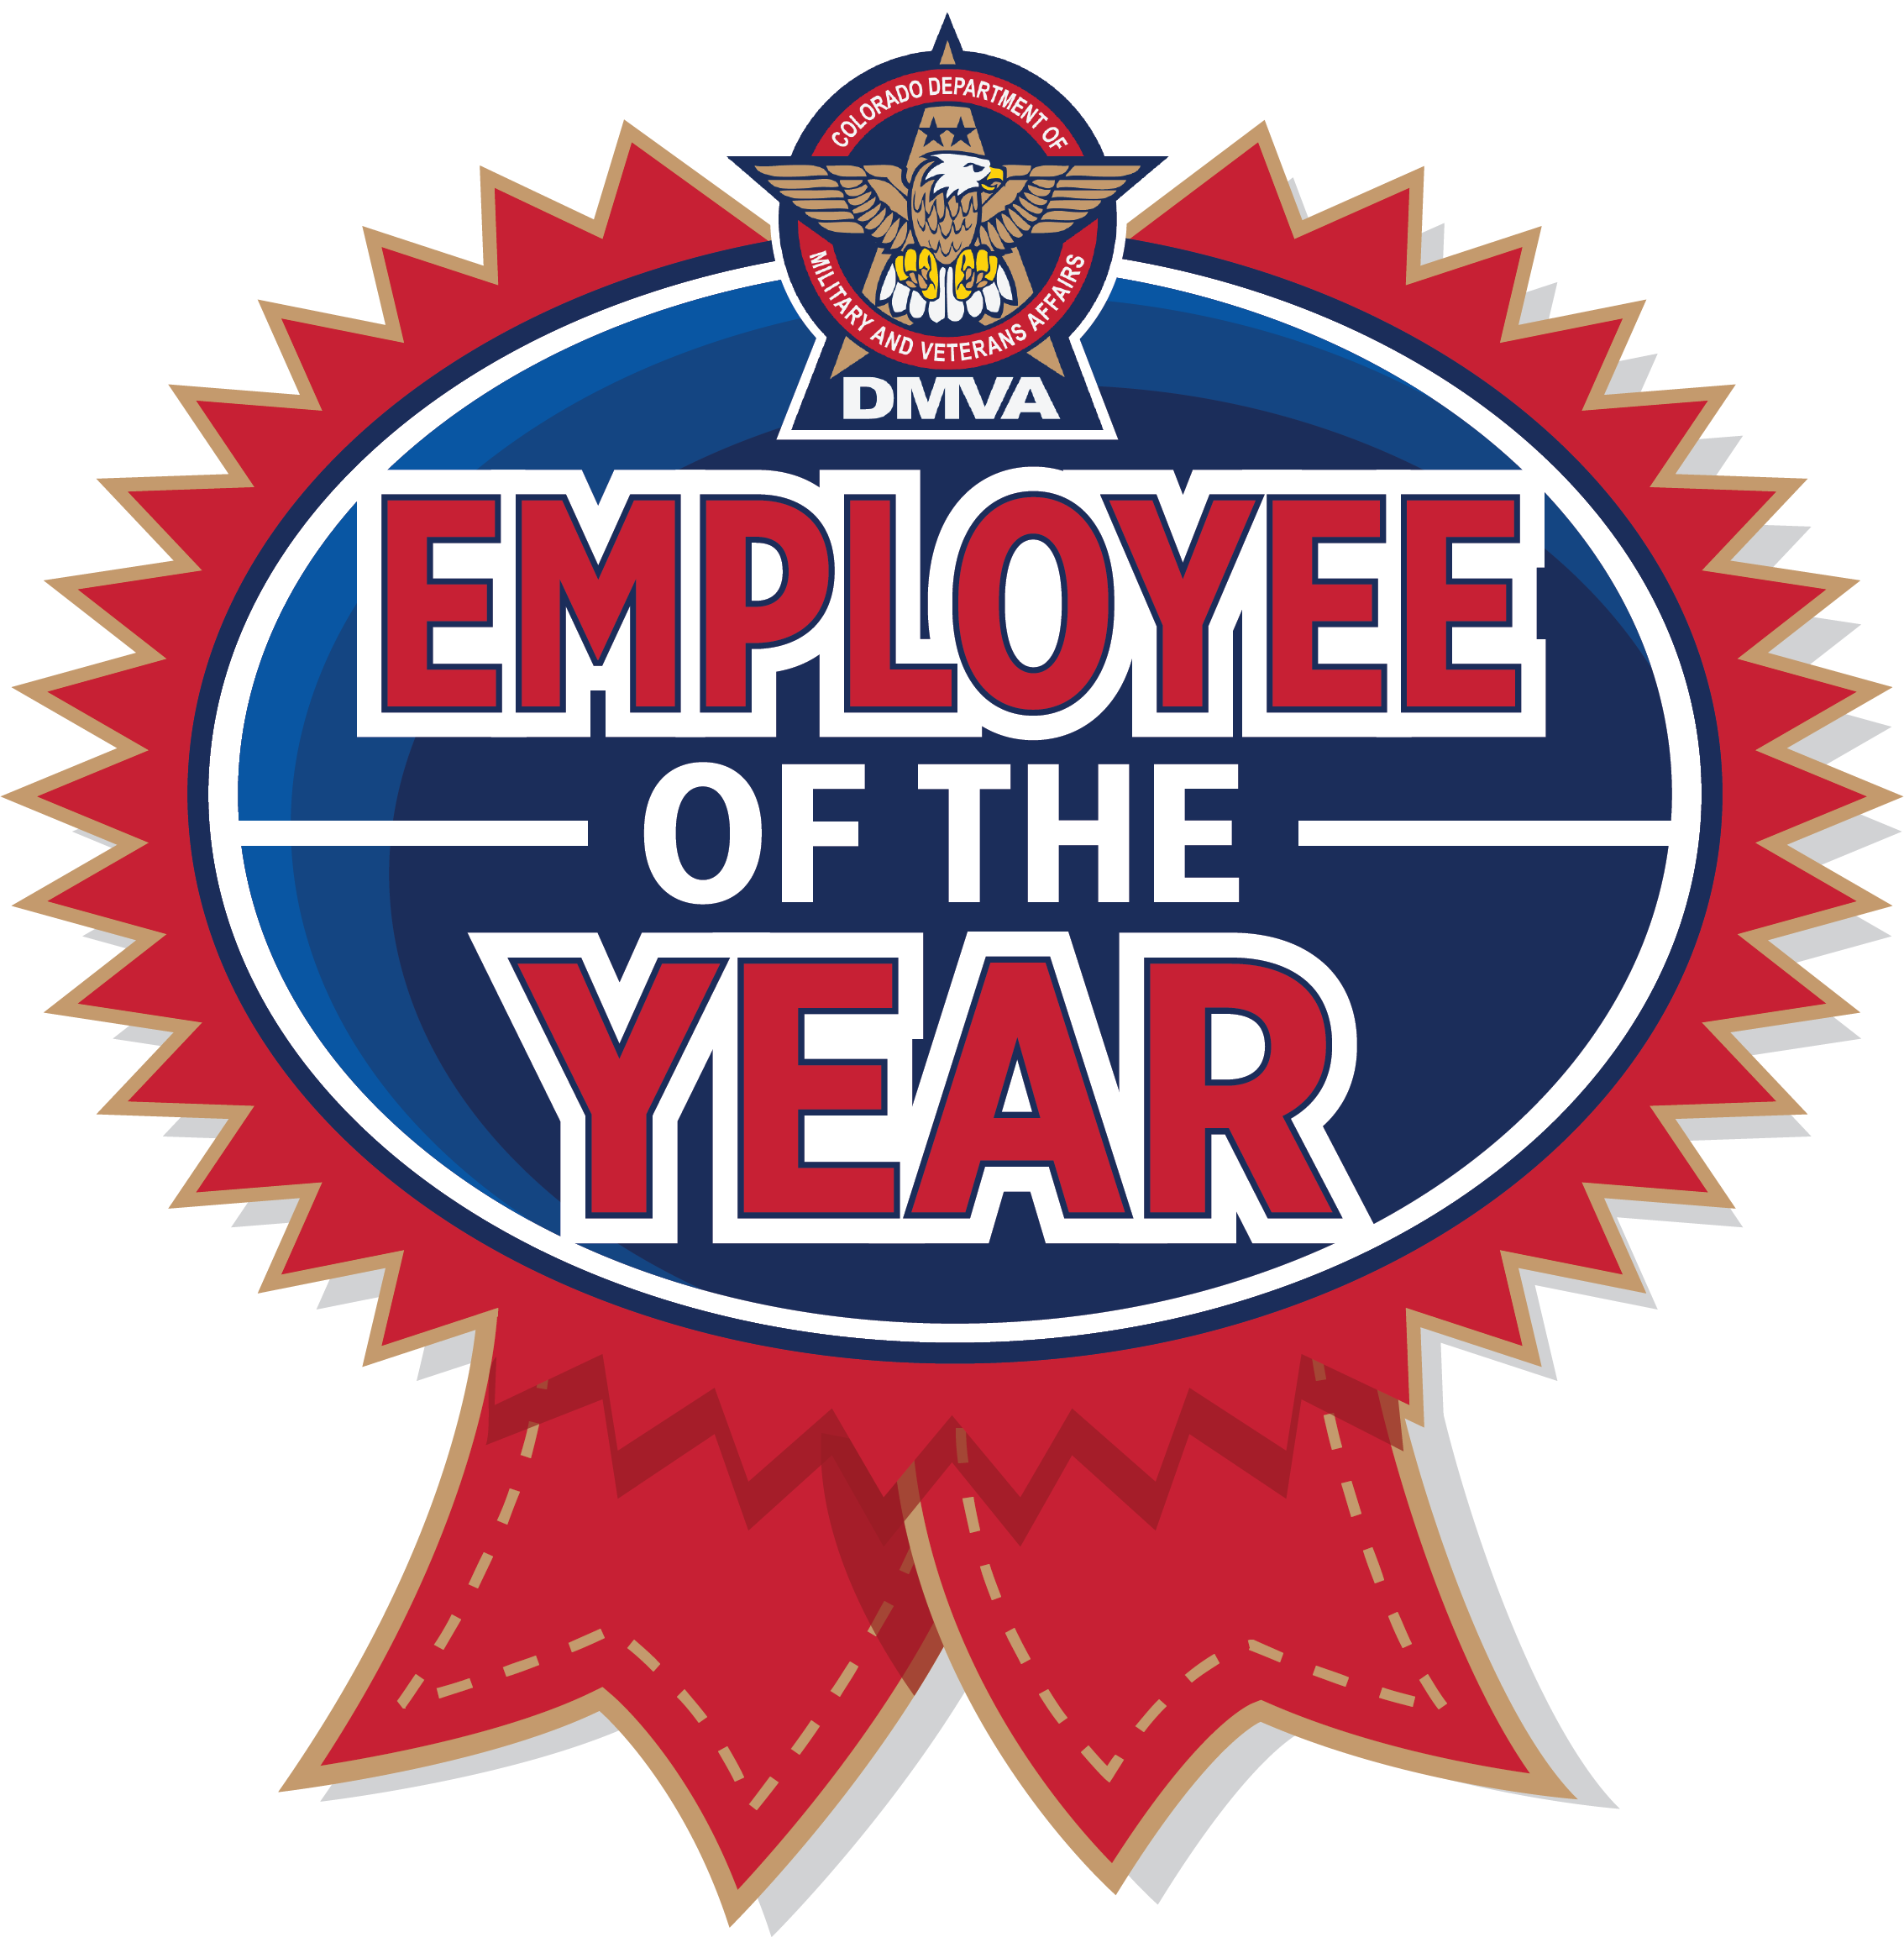 Employee of the Year logo